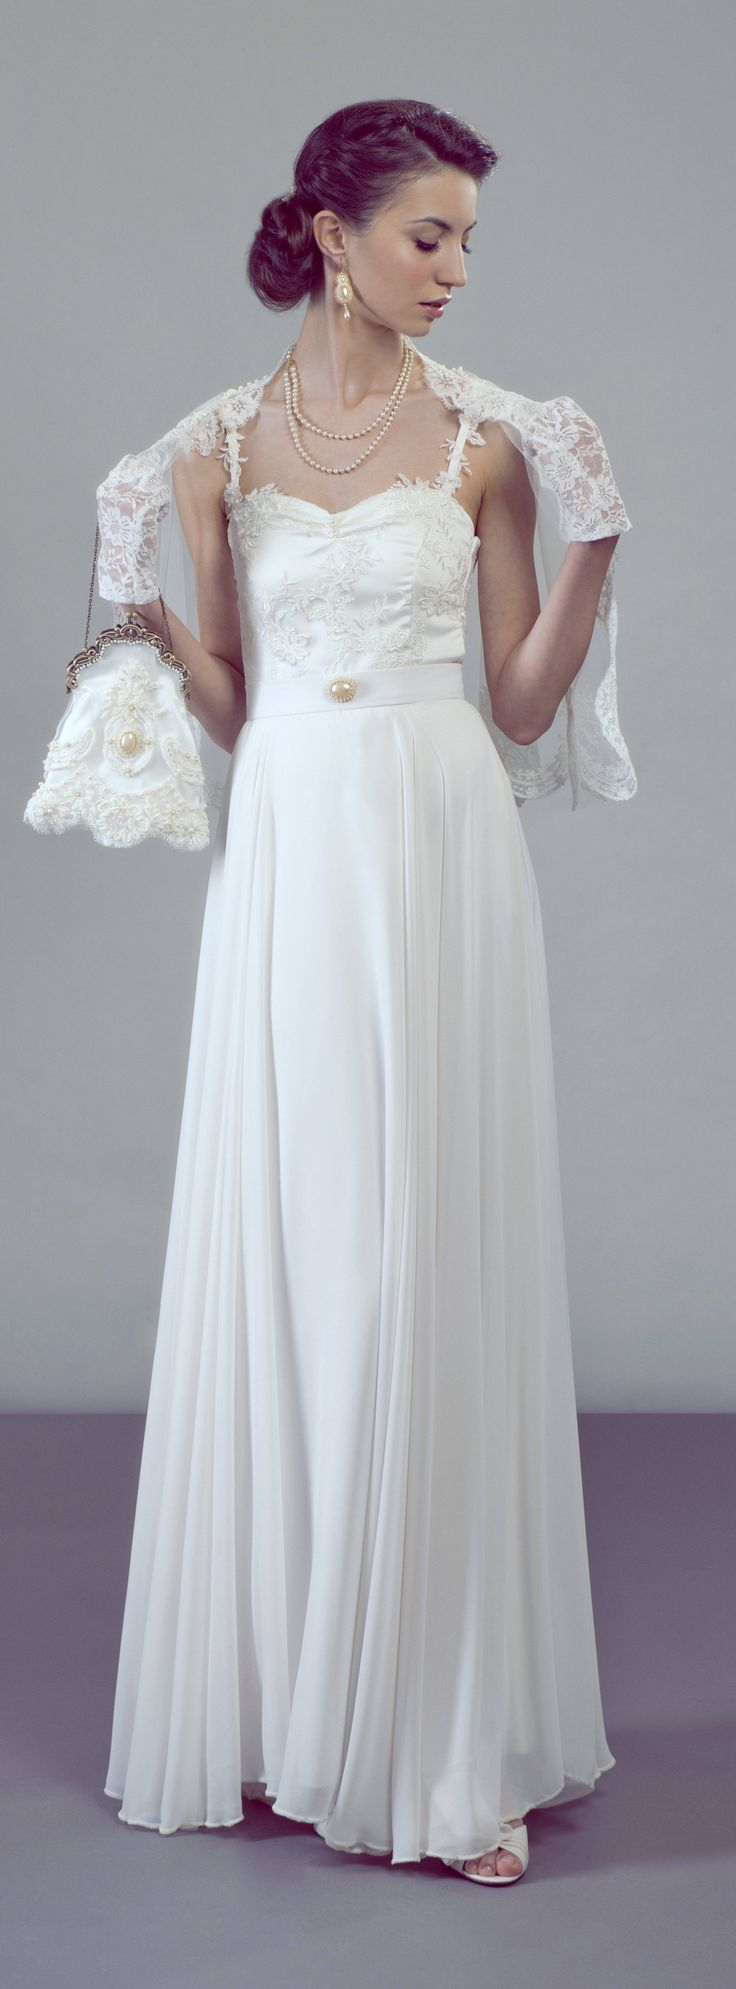 Elegant Vintage Inspired Bridal Look By Petite Lumiere Two Piece Wedding Dress Separates